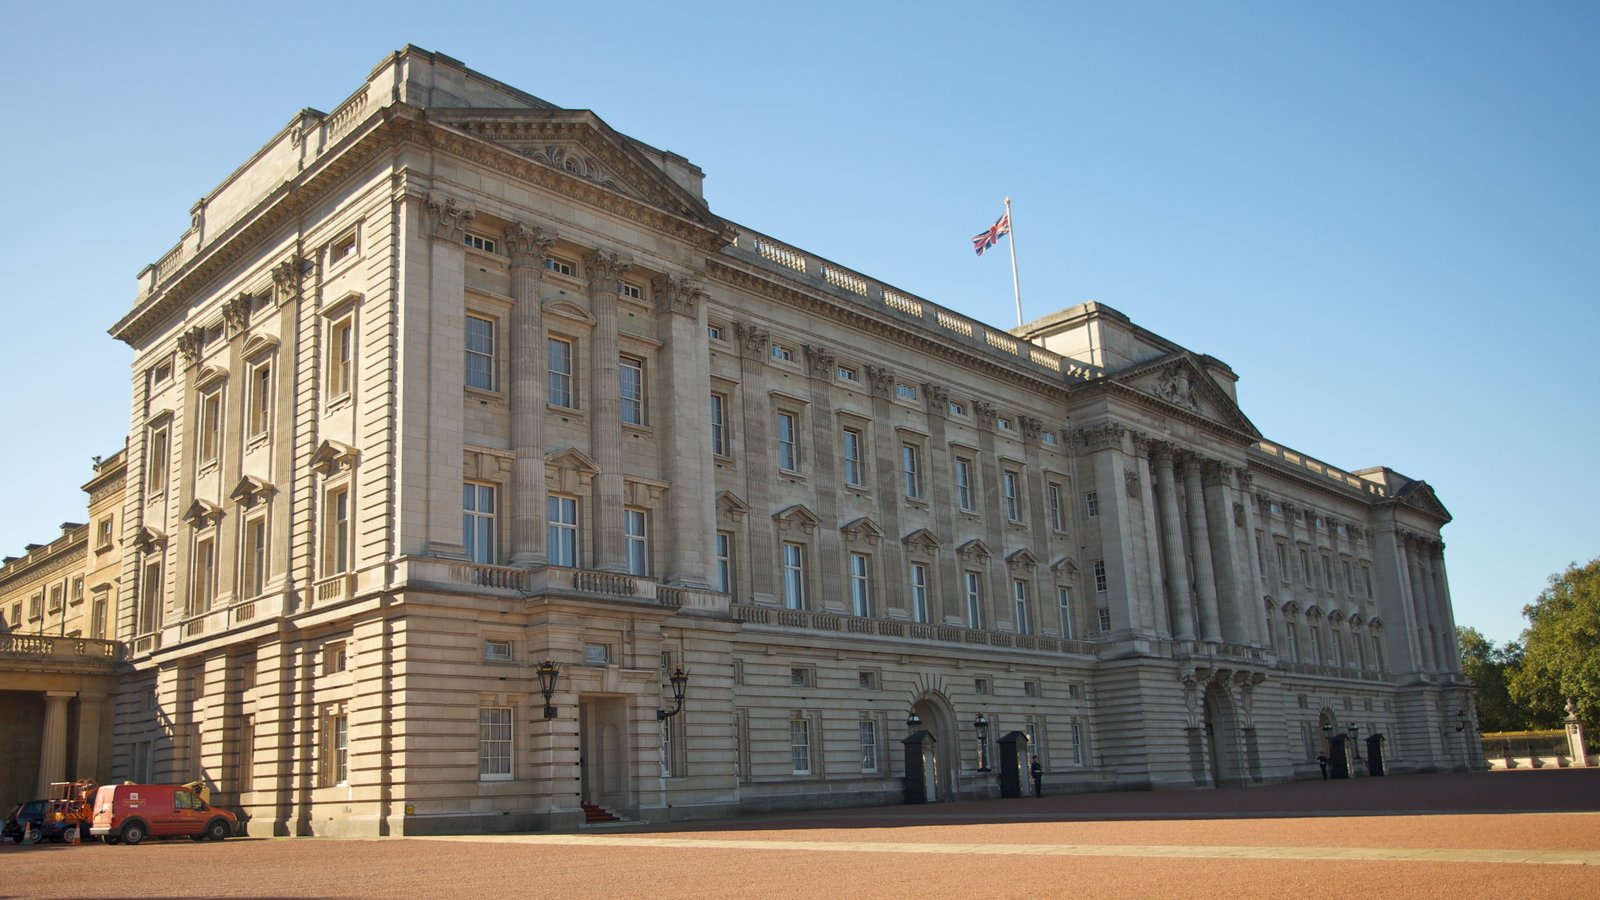 buckingham personals Buckingham palace finally became the principal royal residence in 1837, on the accession of queen victoria, who was the first monarch to reside there her predecessor william iv had died before its completion.